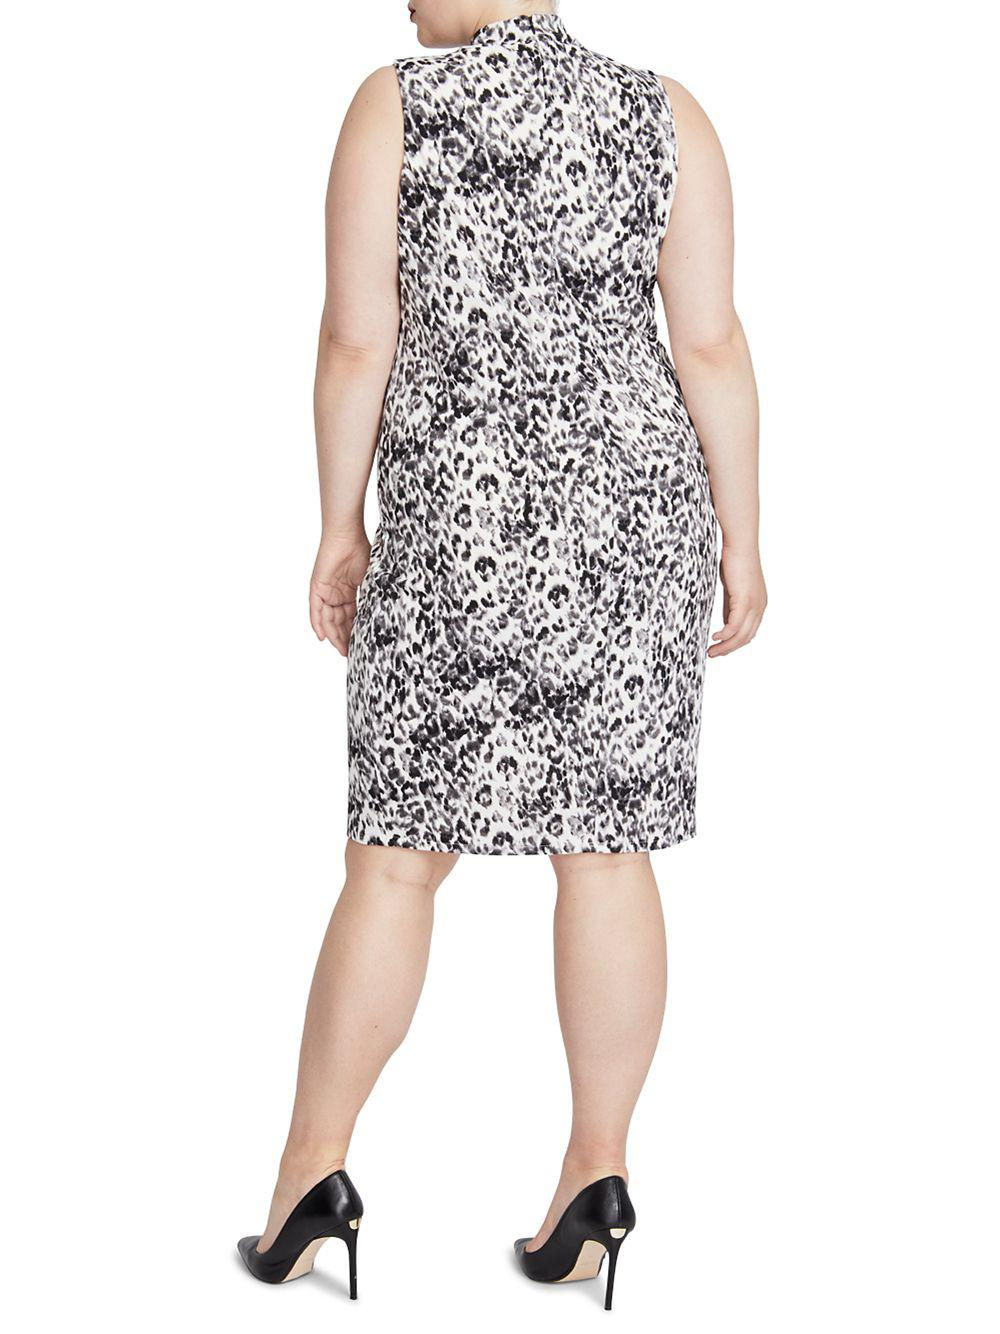 8694dc15ba7d RACHEL Rachel Roy - Black Plus Axel Leopard Print Knot-neck Dress - Lyst.  View fullscreen